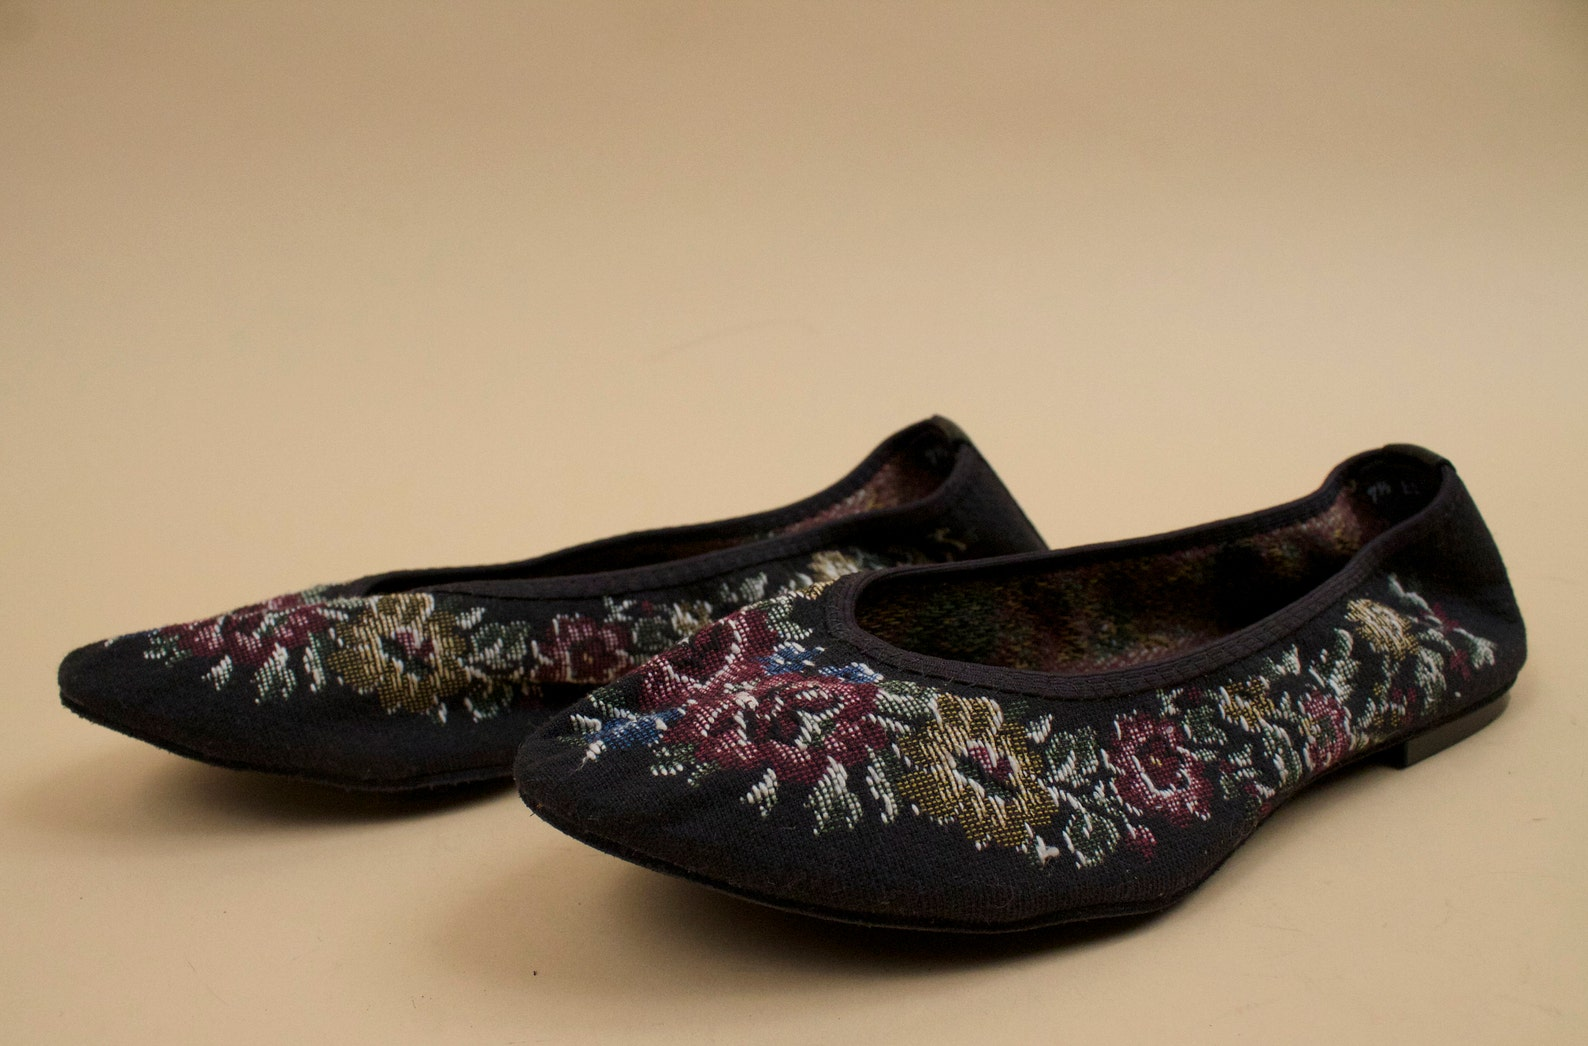 80s vtg black floral needlepoint tapestry ballet flats / cap toe dance casual shoes slipper 7.5 ee [ wide] eu 38